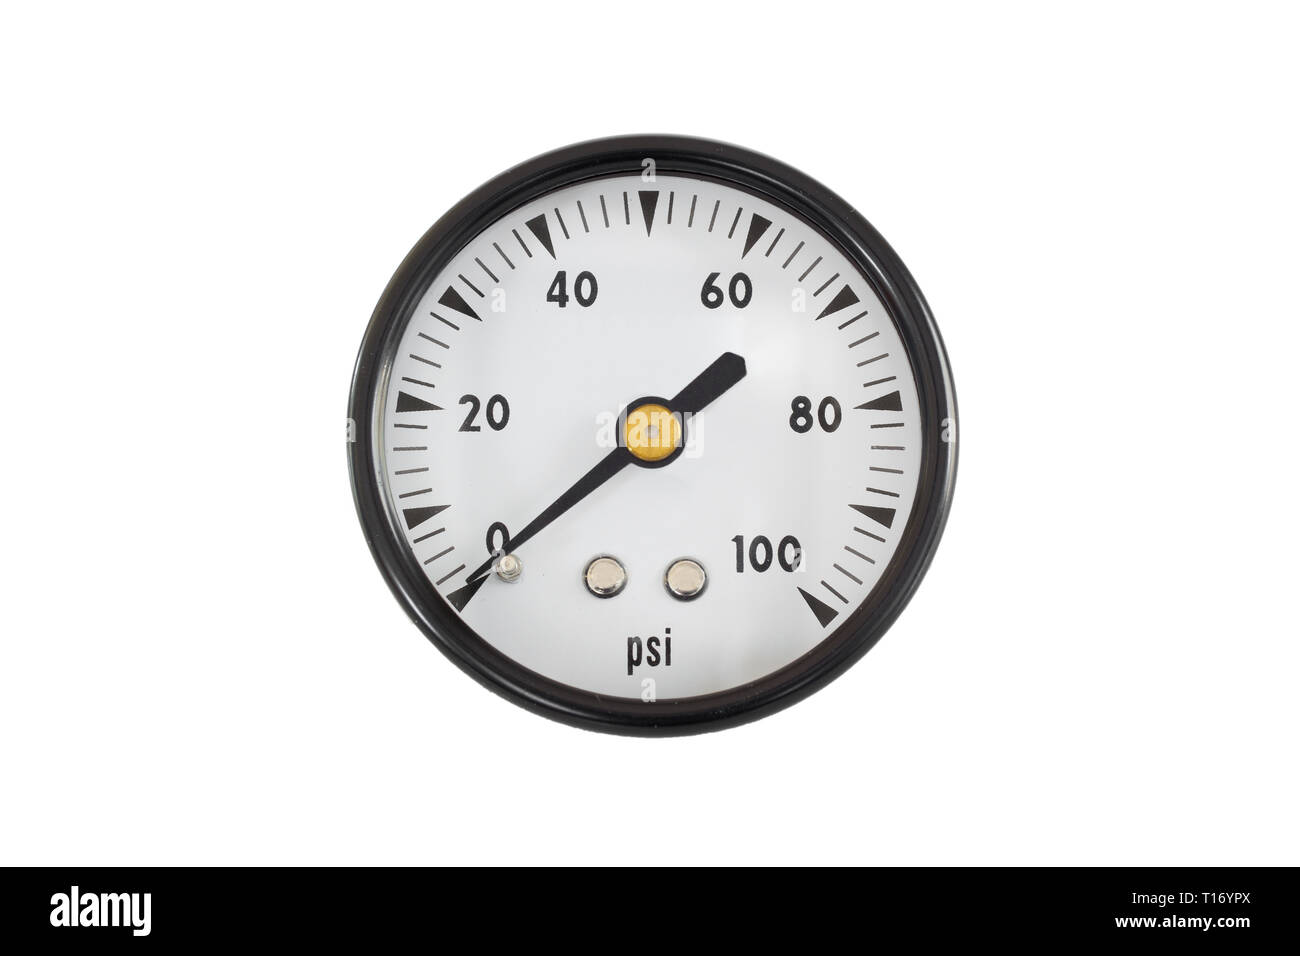 Dial type pressure gauge isolated on white. - Stock Image